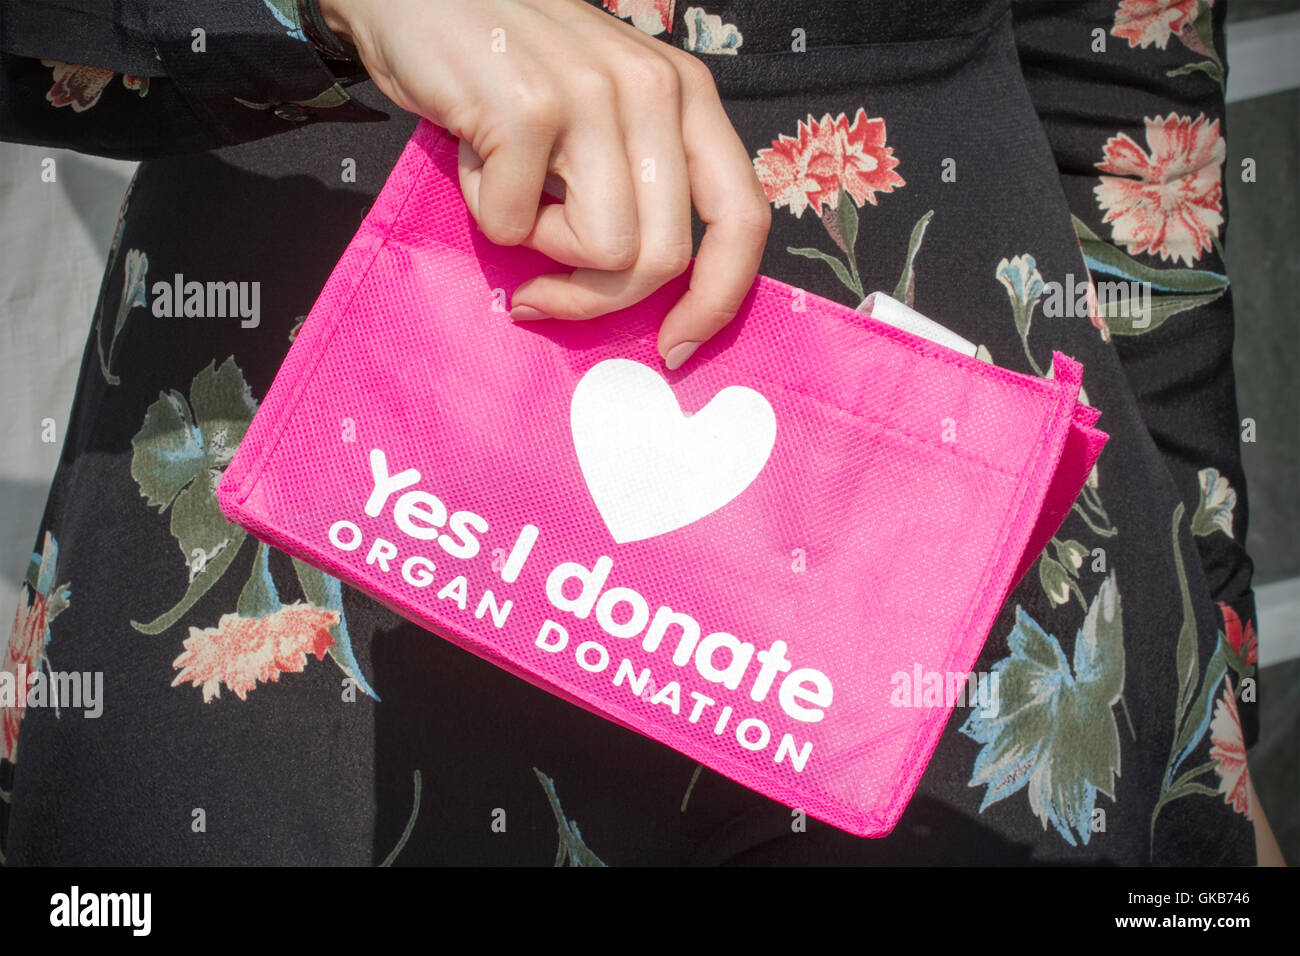 NHS campaign to encourage visitors to register for organ donation at Southport Flower Show, 2016, Merseyside,UK - Stock Image